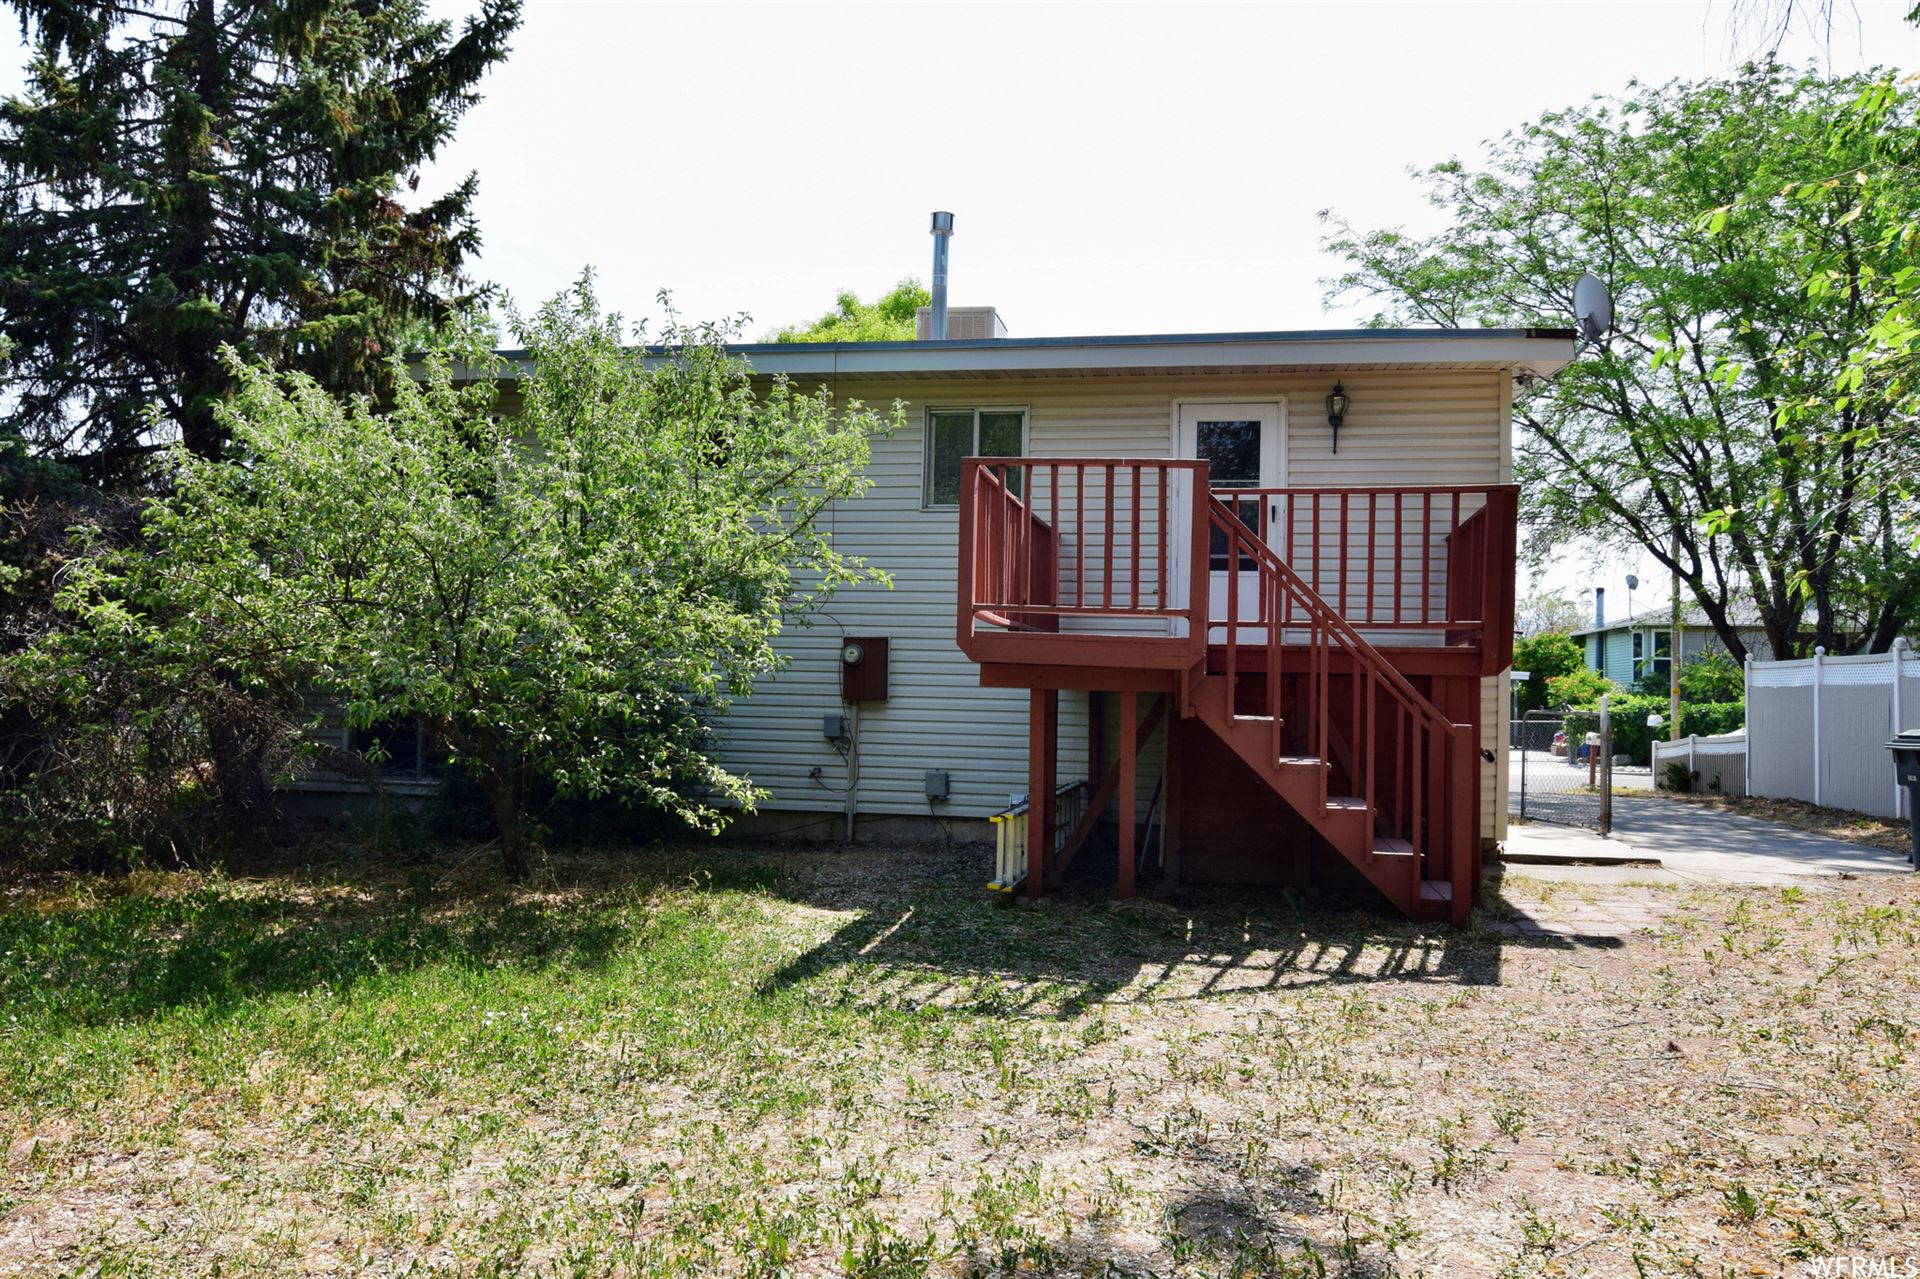 Photo of 4206 S WHIPOORWHIL ST, West Valley City, UT 84120 (MLS # 1748960)